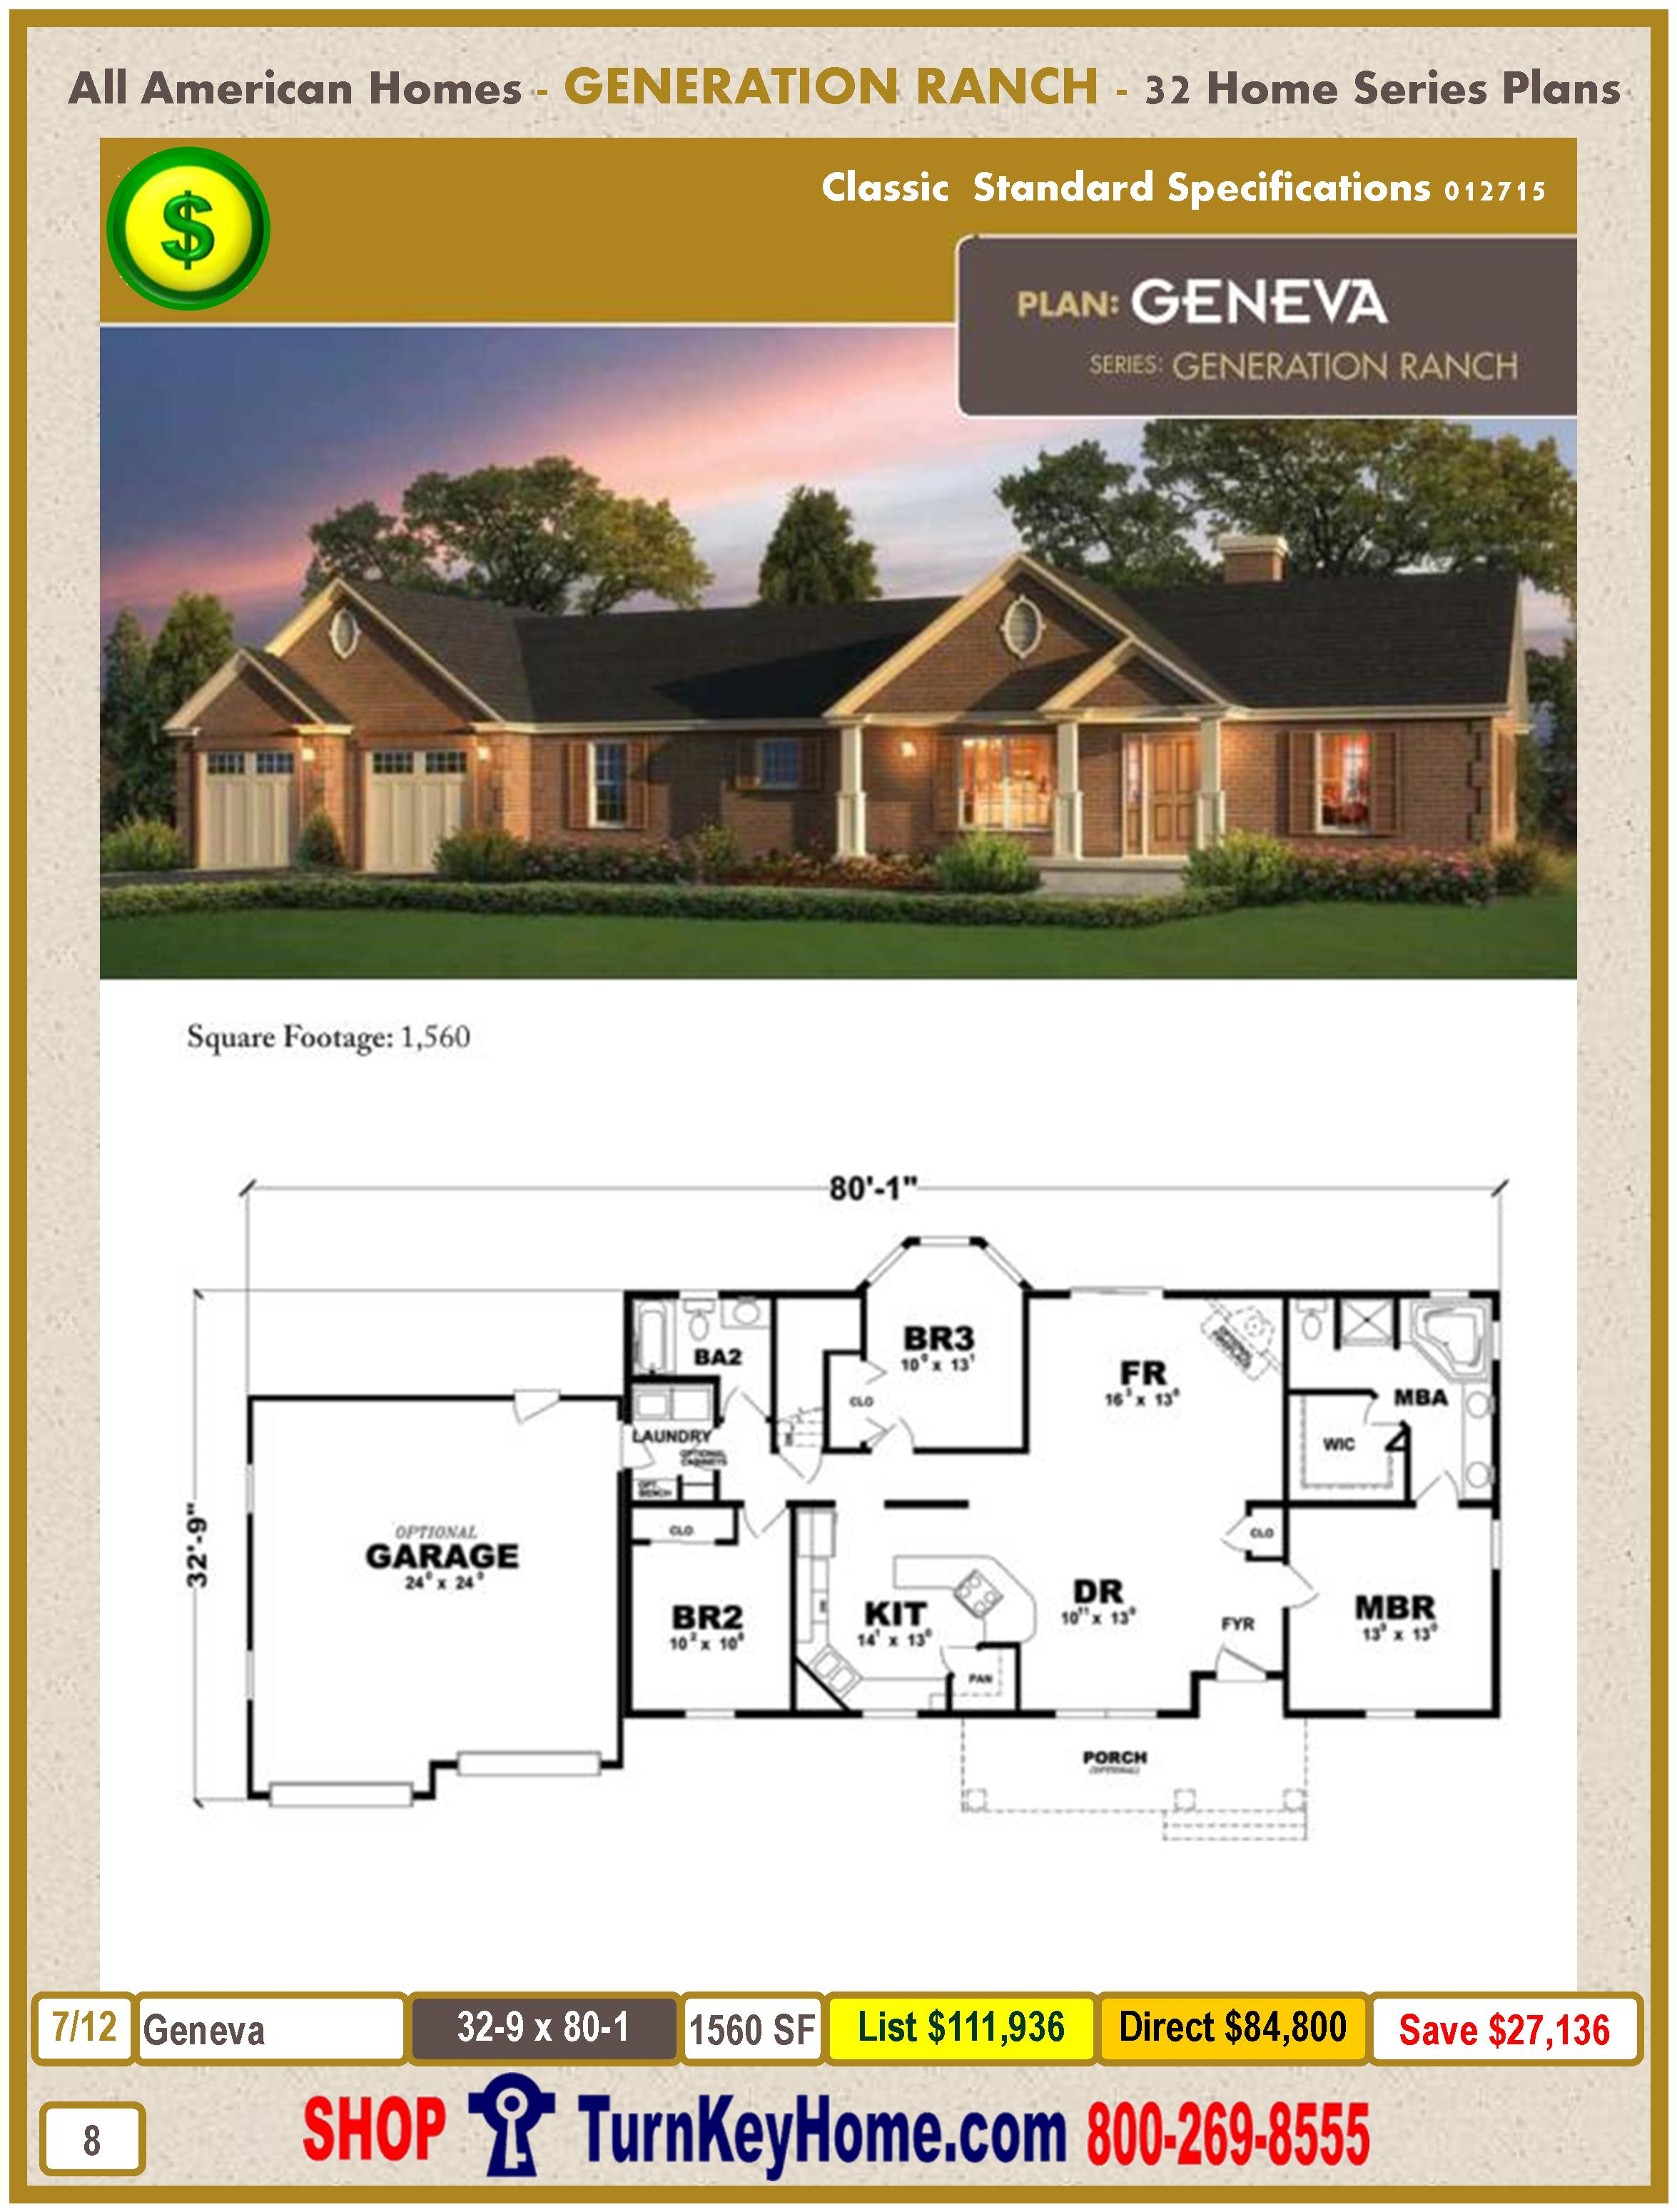 Modular.All.American.Homes.Generation.Ranch.Home.Series.Catalog.Page.8.Geneva.Direct.Price.021415